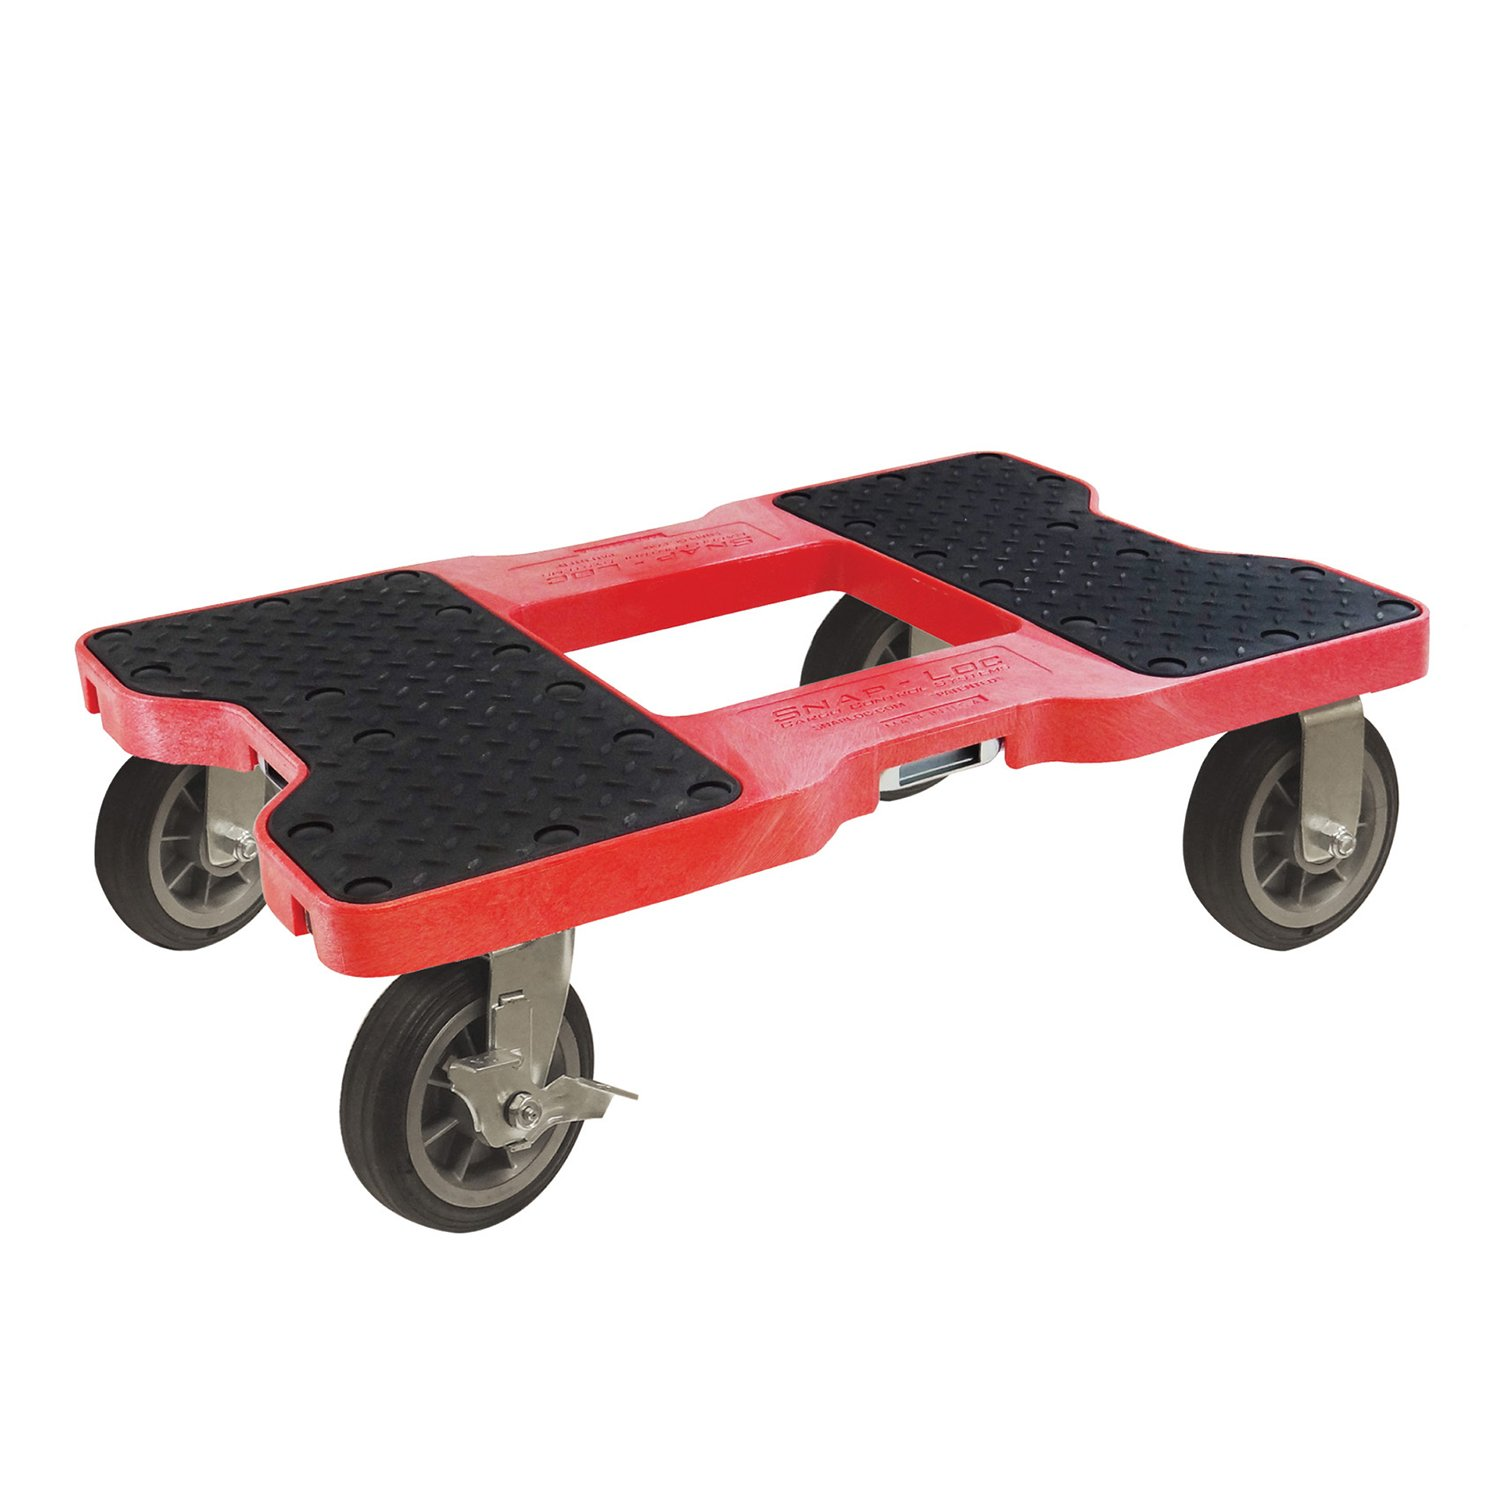 SNAP-LOC ALL-TERRAIN DOLLY RED (USA!) with 1500 lb Capacity, Steel Frame, 6 inch Casters and optional E-Strap Attachment by Snap-Loc Cargo Control Systems